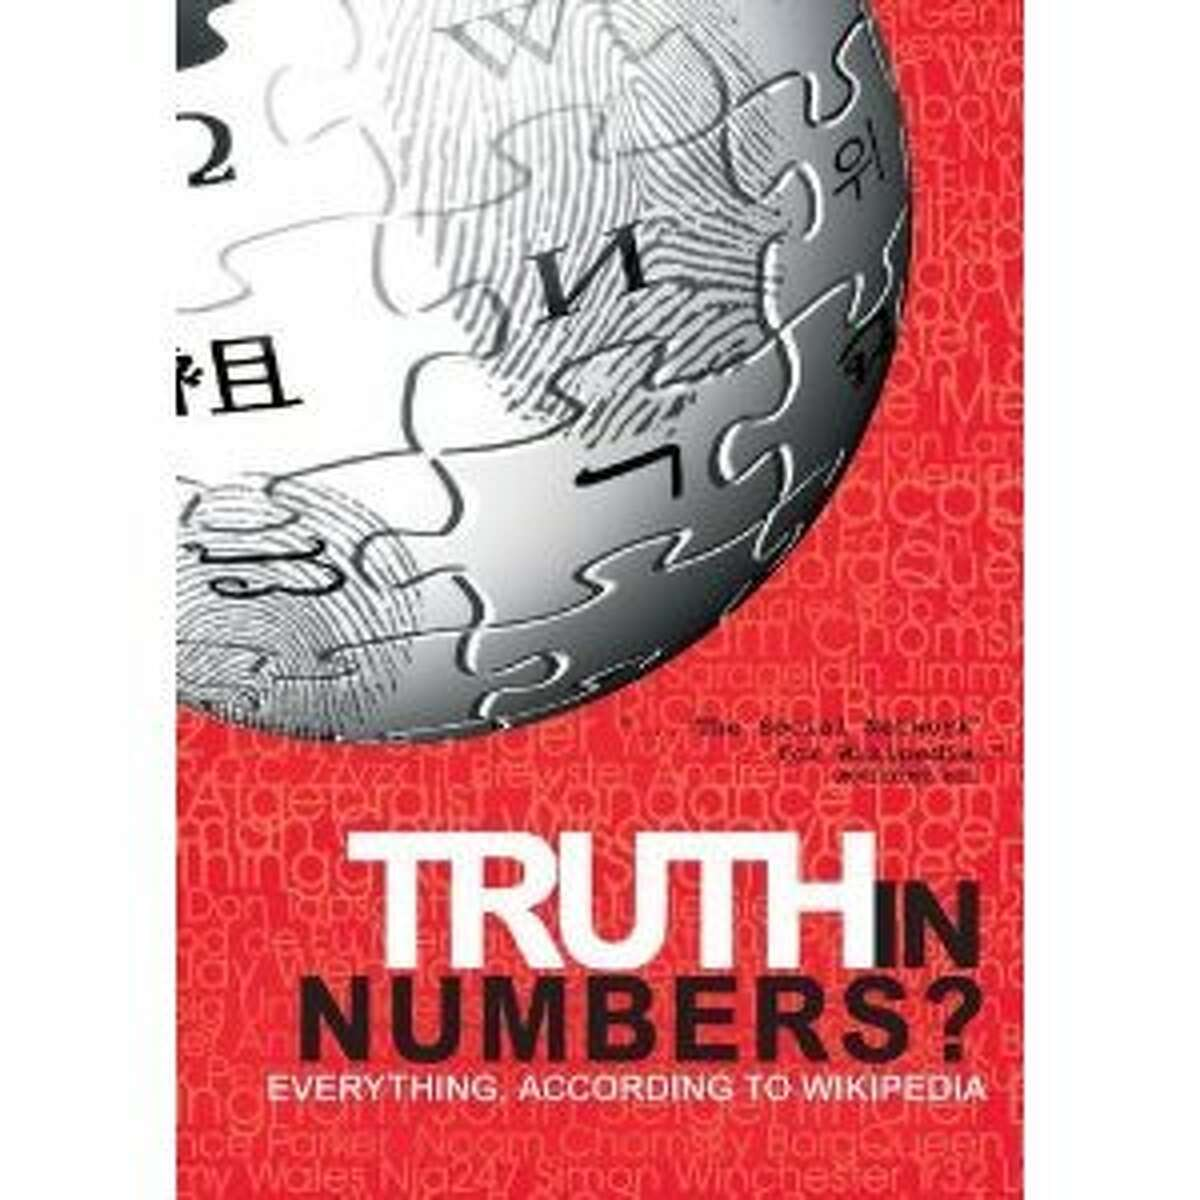 """The DVD for """"Truth in Numbers? Everything According to Wikipedia"""" in 2011. Wikipedia, created to be """"the people's dictionary"""" turned 18 this week. It now contains more than 48 million articles in some 300 languages."""